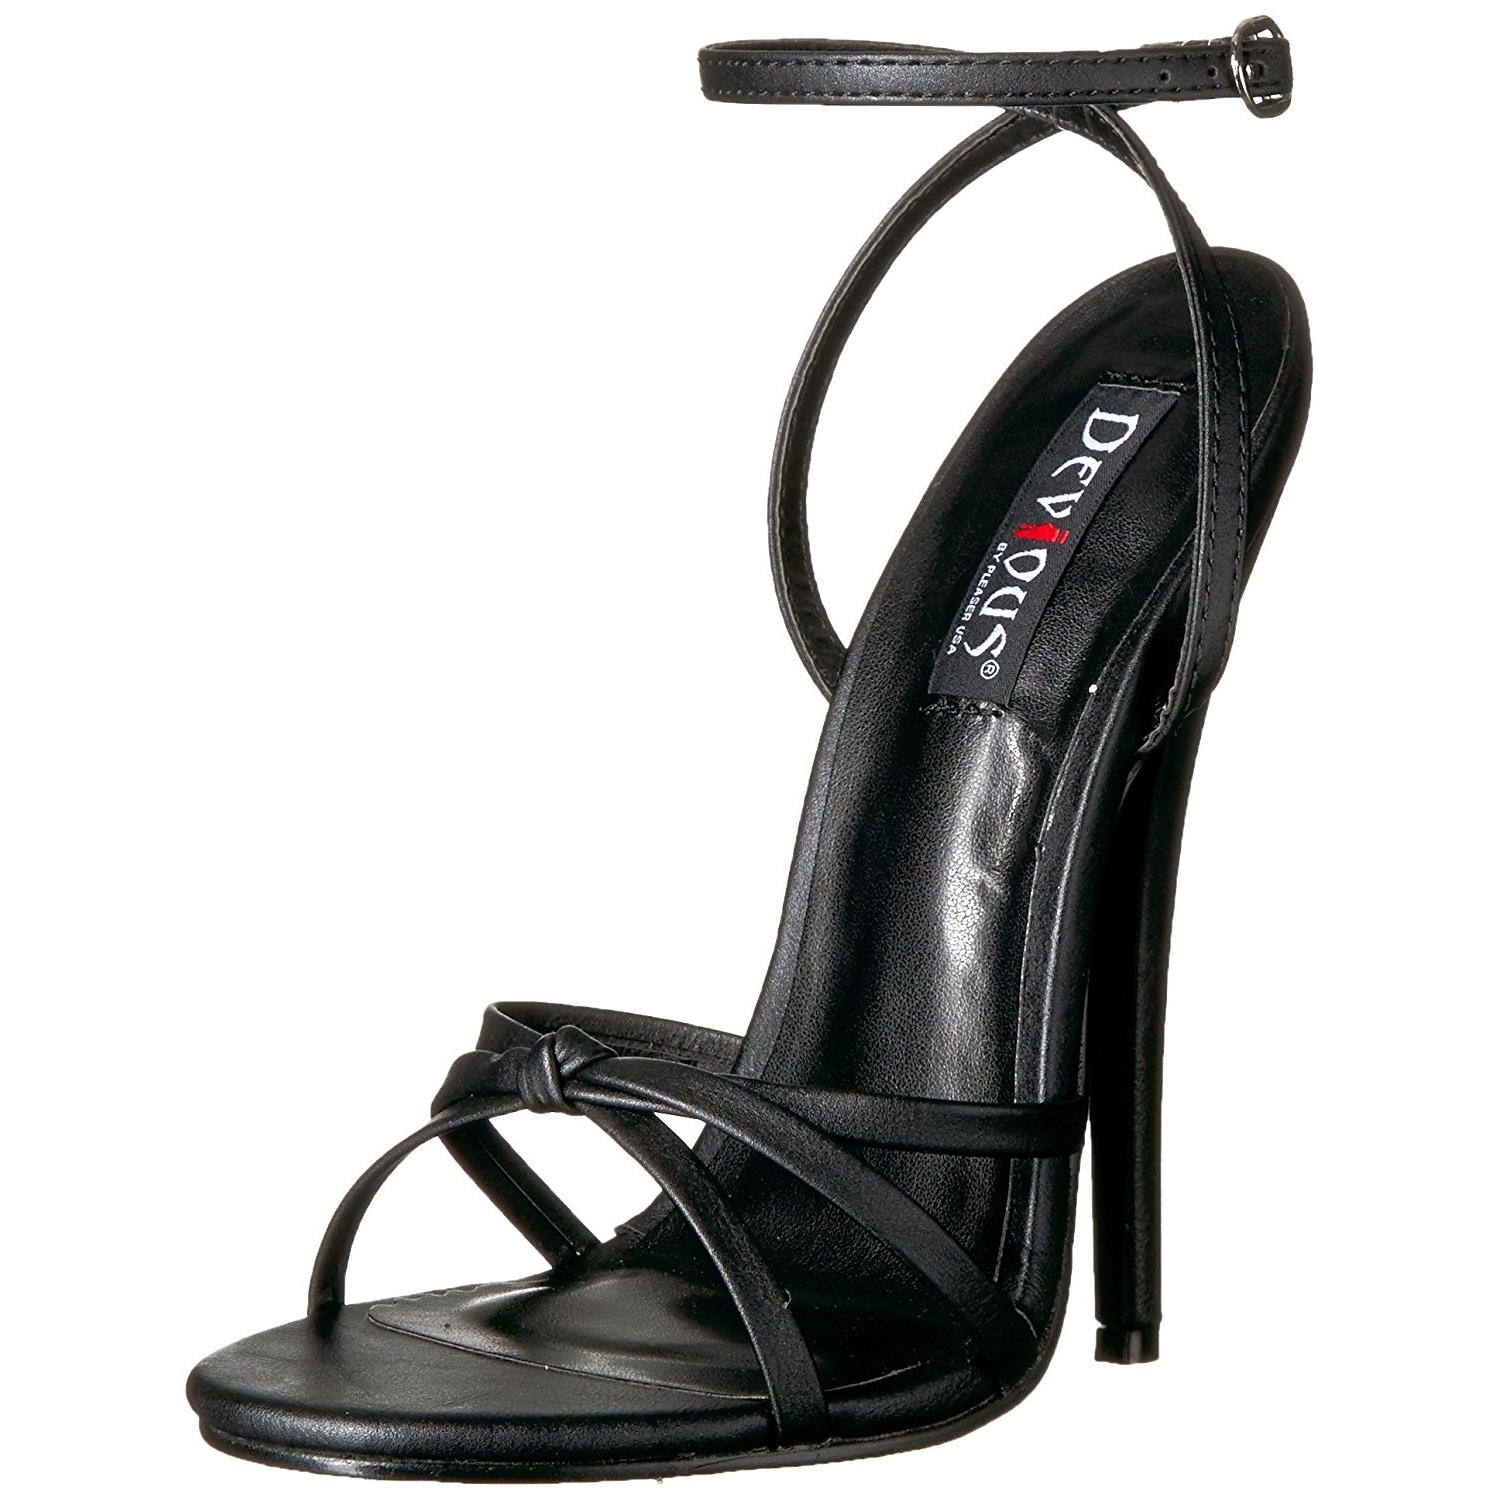 Leatherette 15 cm Devious DOMINA 108 high heeled sandals